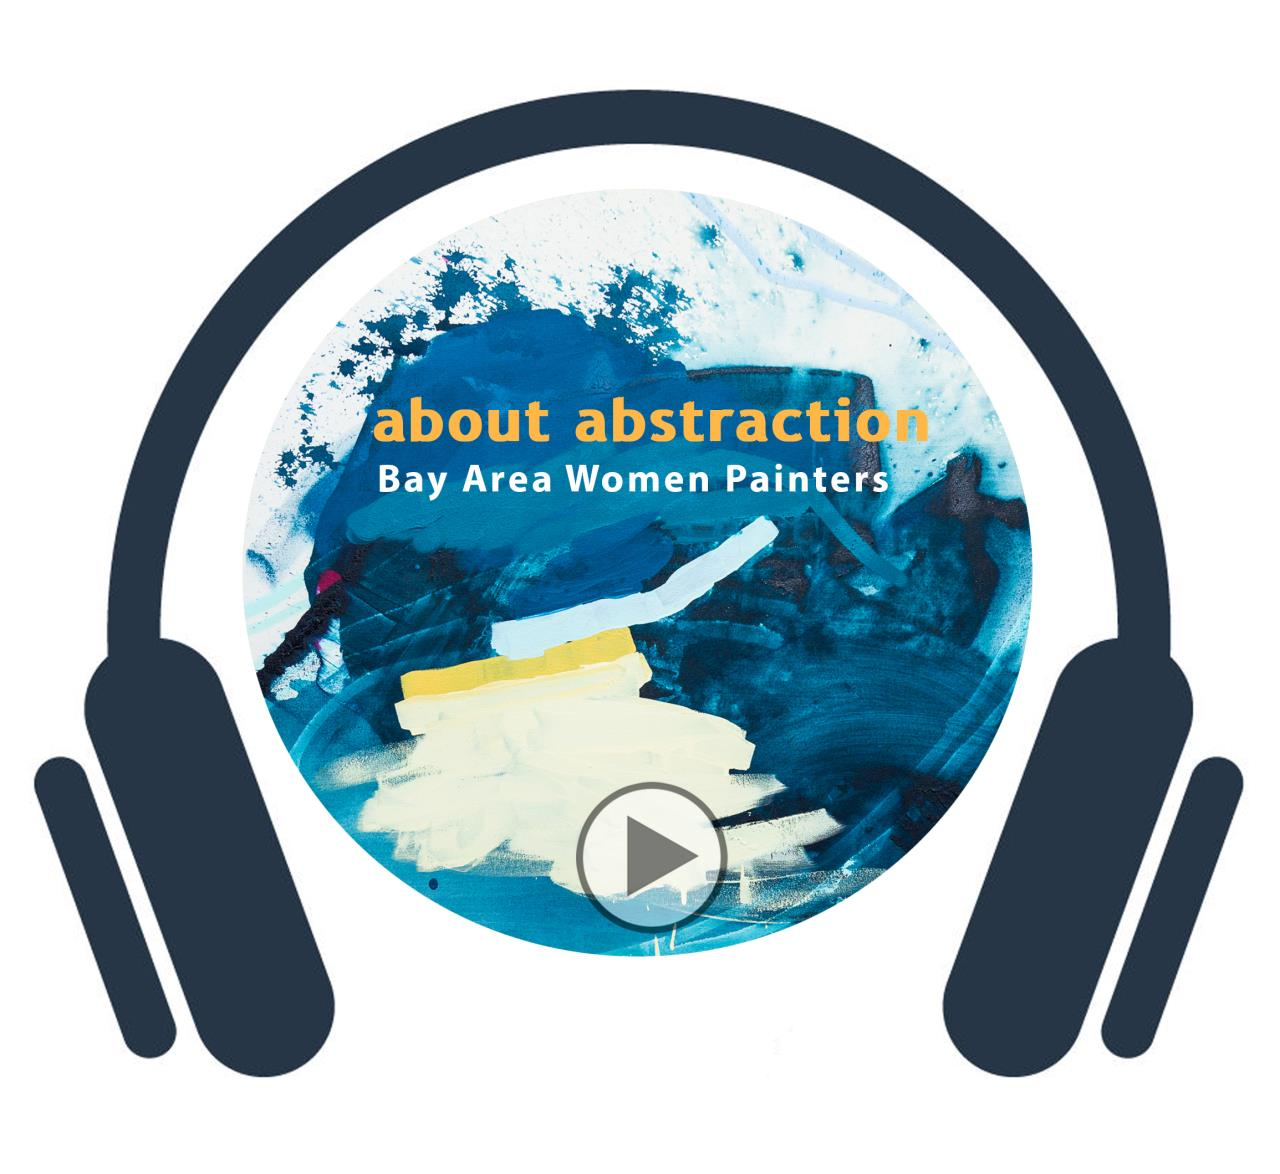 About Abstraction audio tour